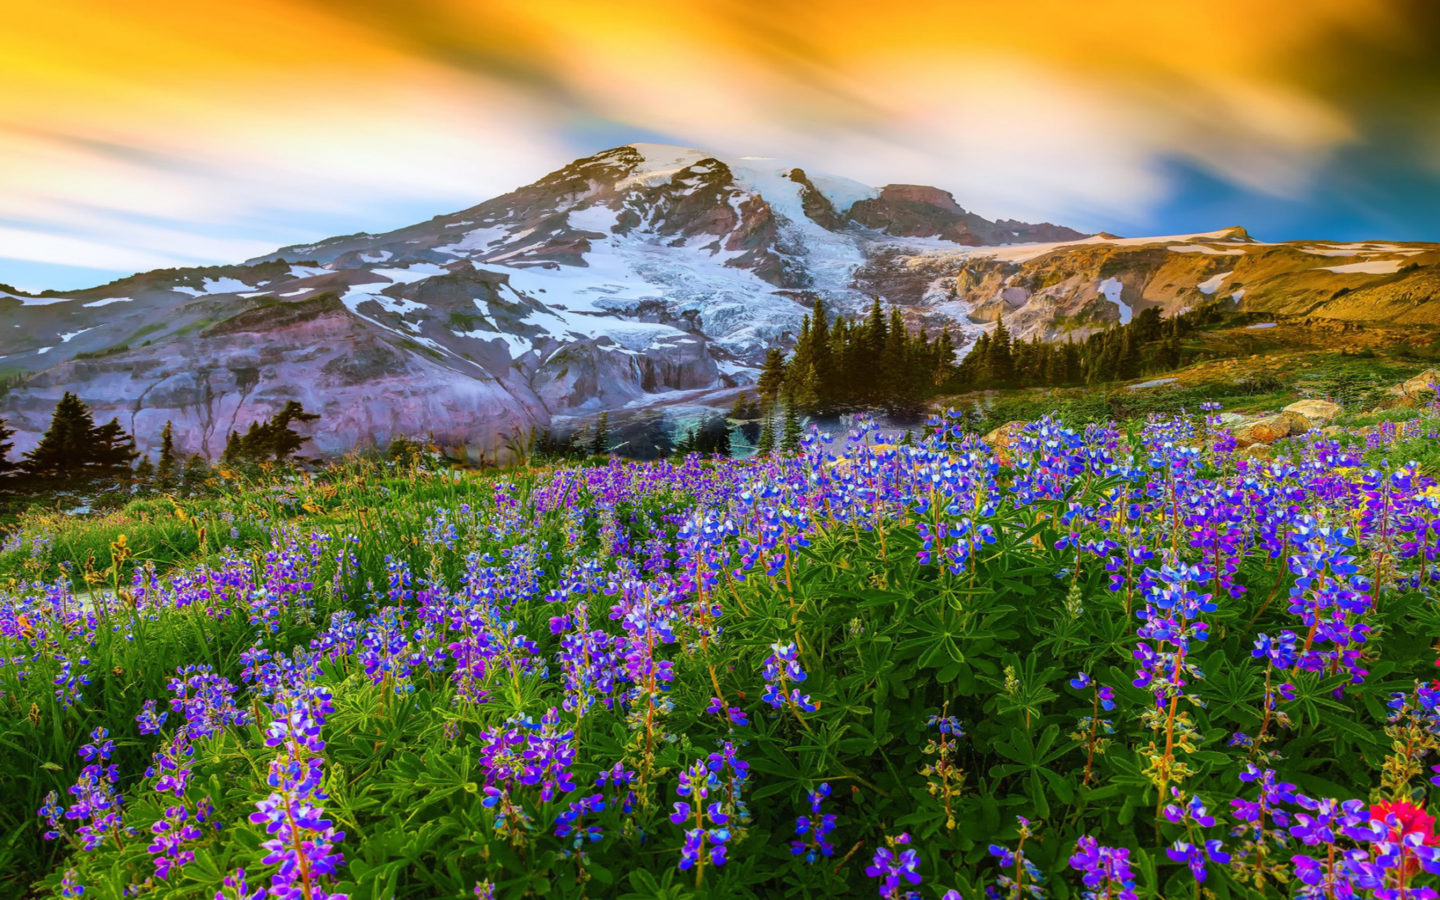 Fall Flowers Desk Background Wallpaper Beautiful Spring Landscape Nature Flowers Mountain Snow